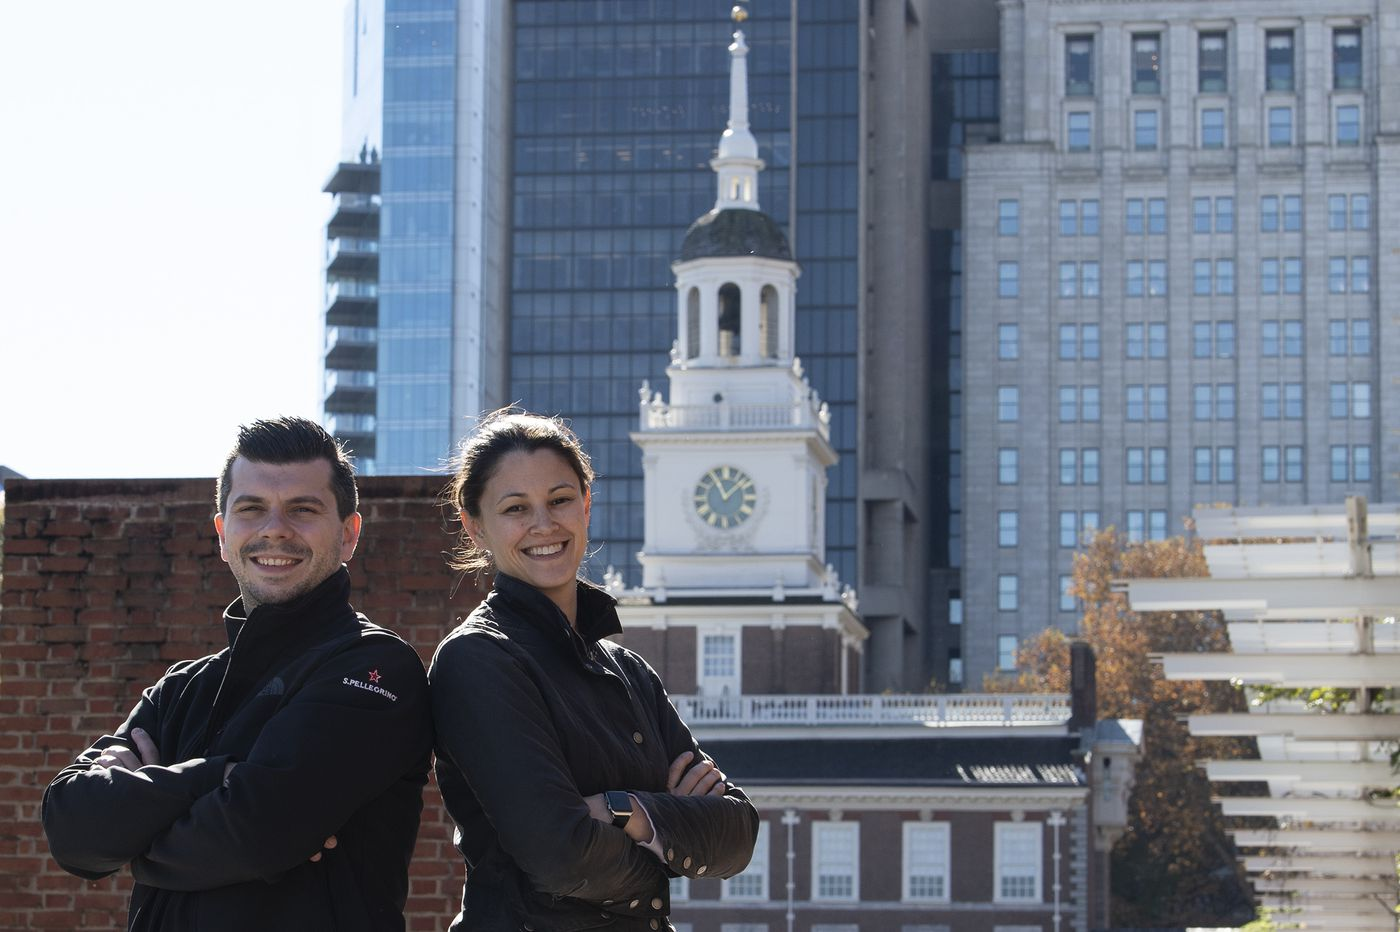 Meet Eddie Konrad and Natalie Maronski, the two Philly competitors on this season of 'Top Chef'